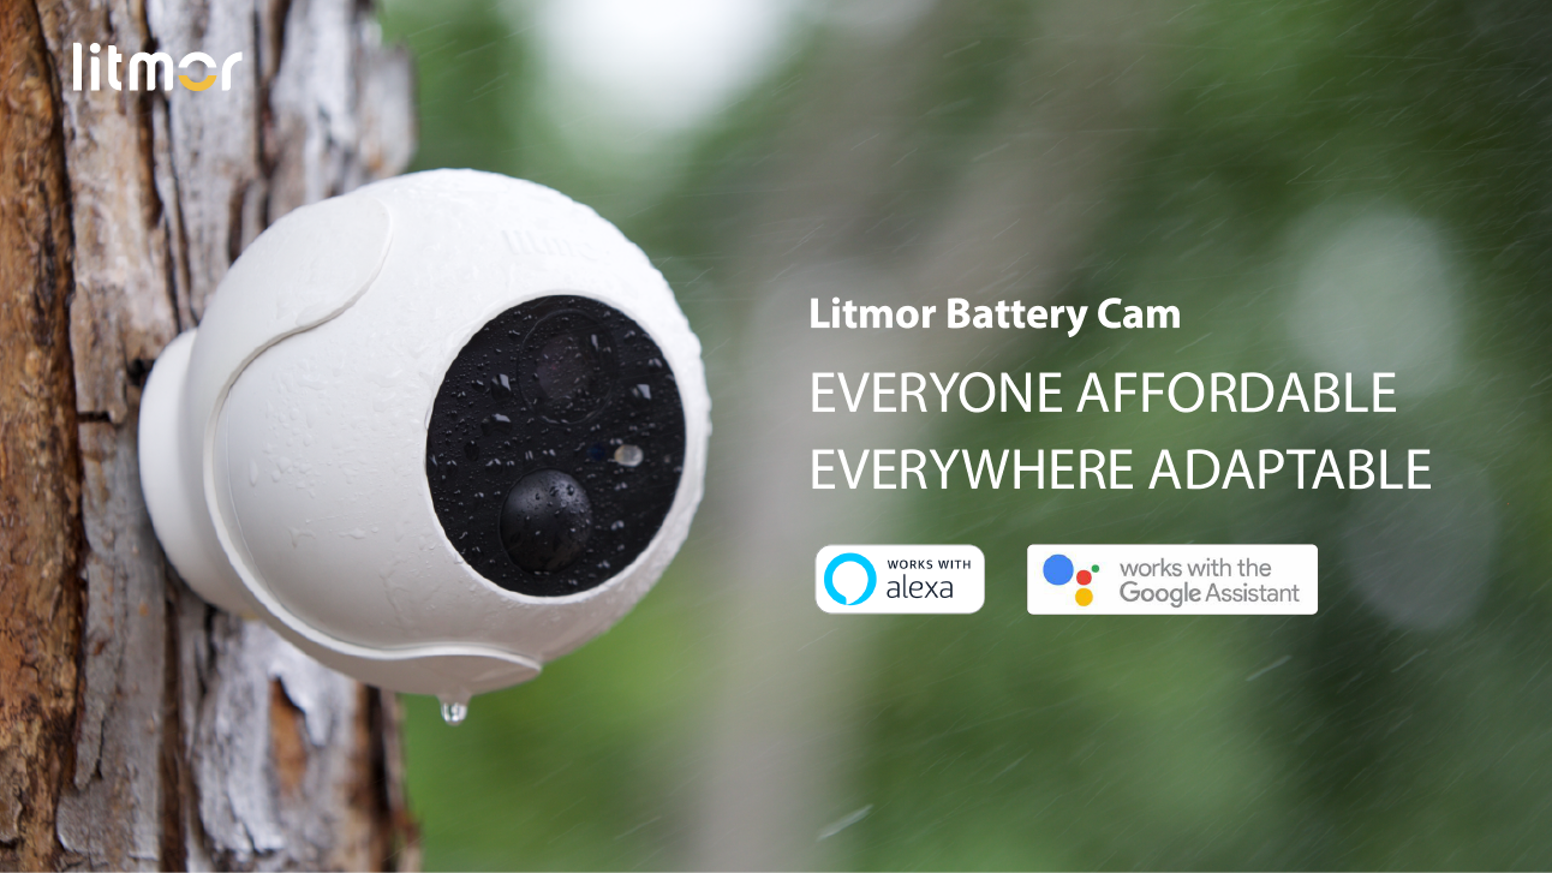 Motion Detection/ 1080p HD/ Free Local Storage/ Color Night Vision/ Waterproof IP66/ Smart Alerts/ Easy Installation